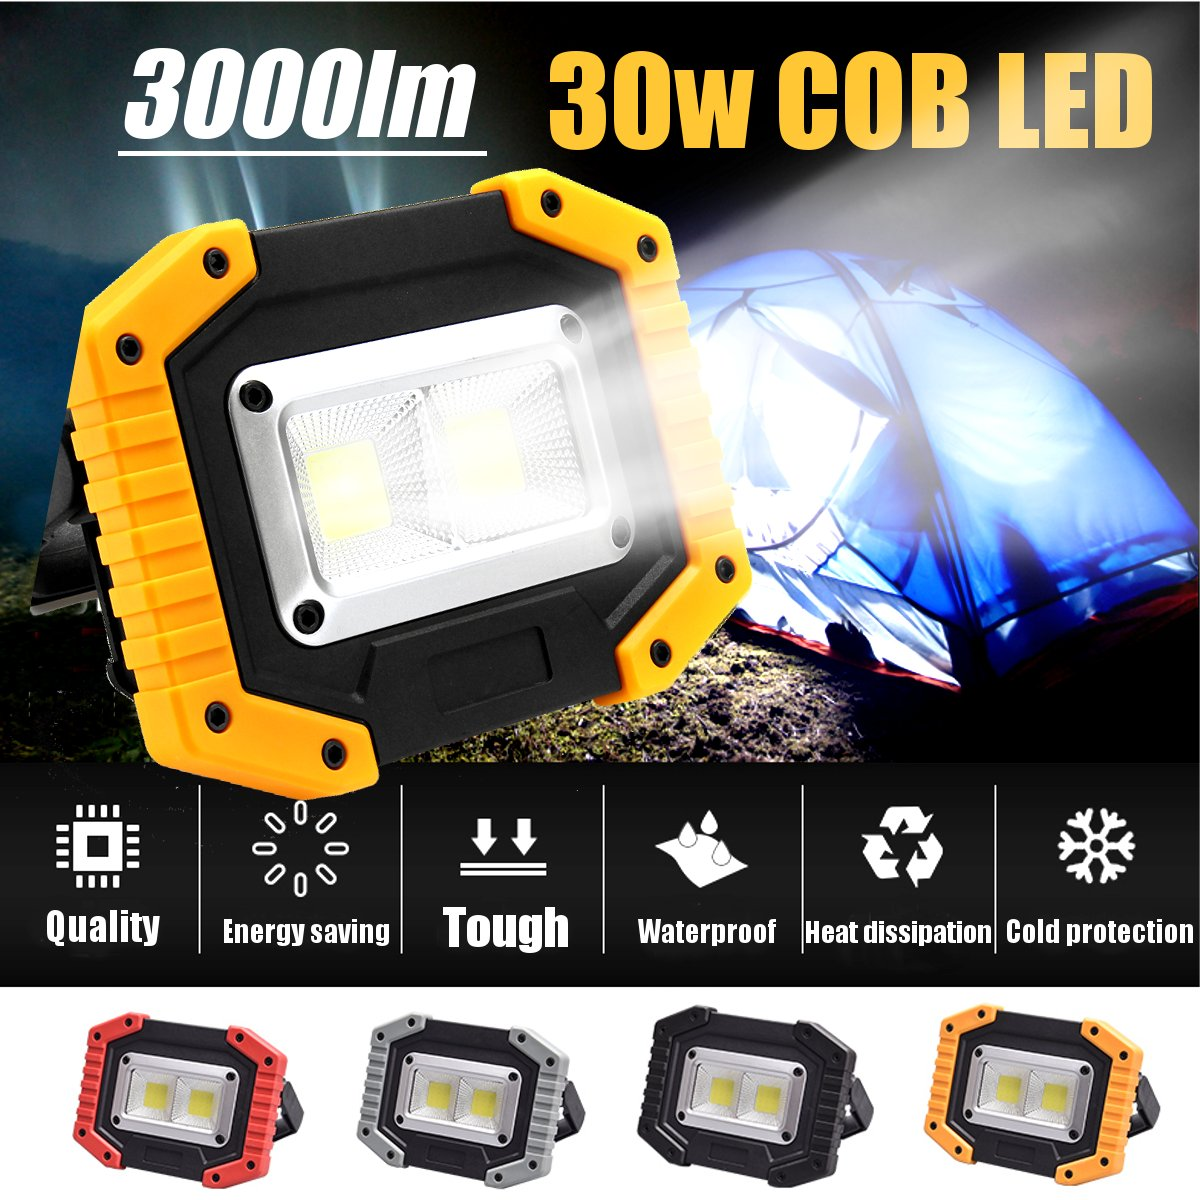 2 COB 30W 3000LM Rechargeable LED Flood Lights Portable Waterproof IP65 for Outdoor Camping Hiking Emergency Car Repair